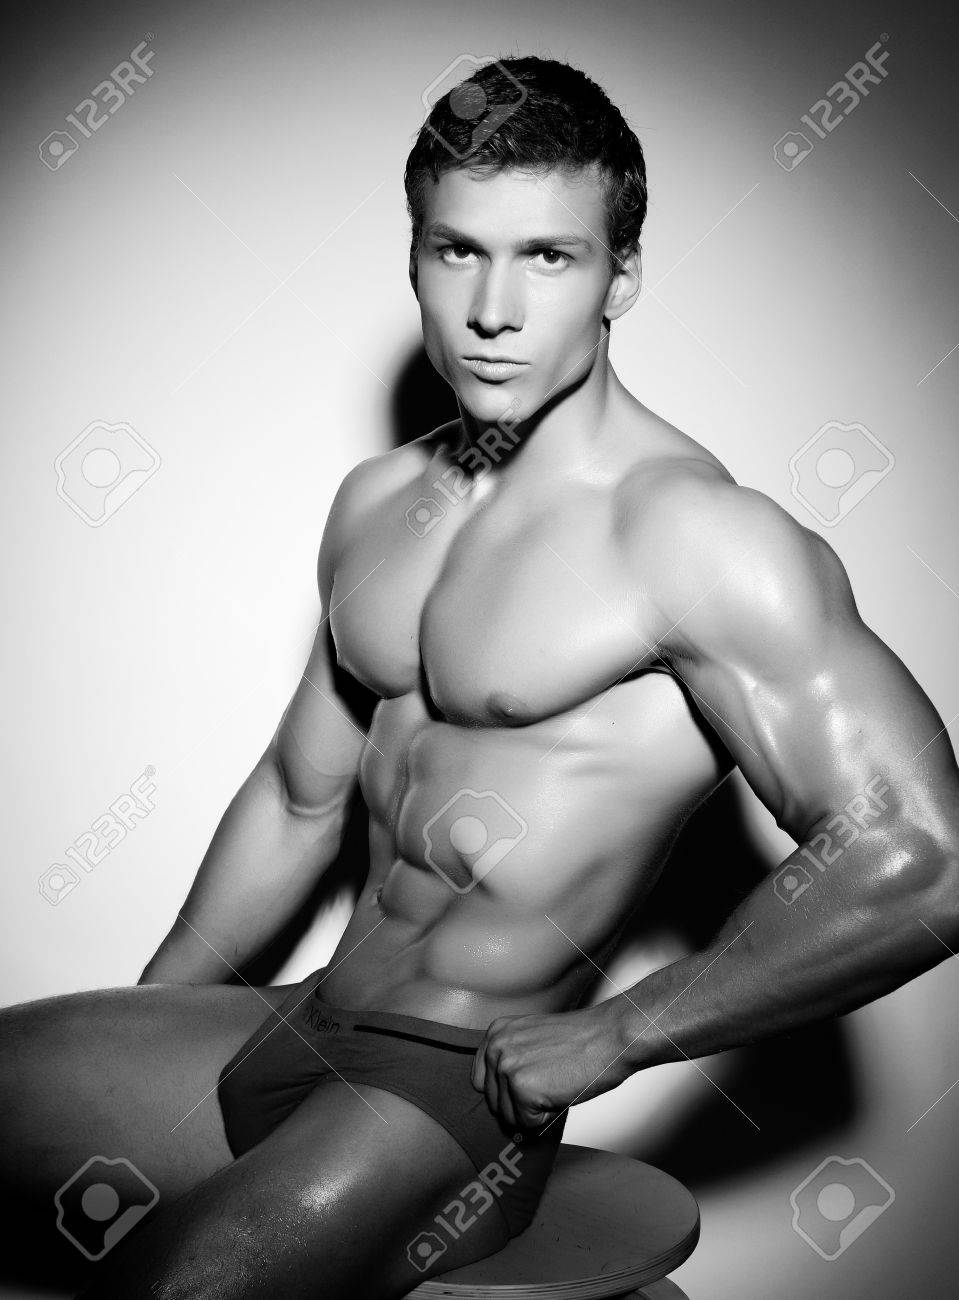 Strong and Excellence male naked body. Stock Photo - 11266788